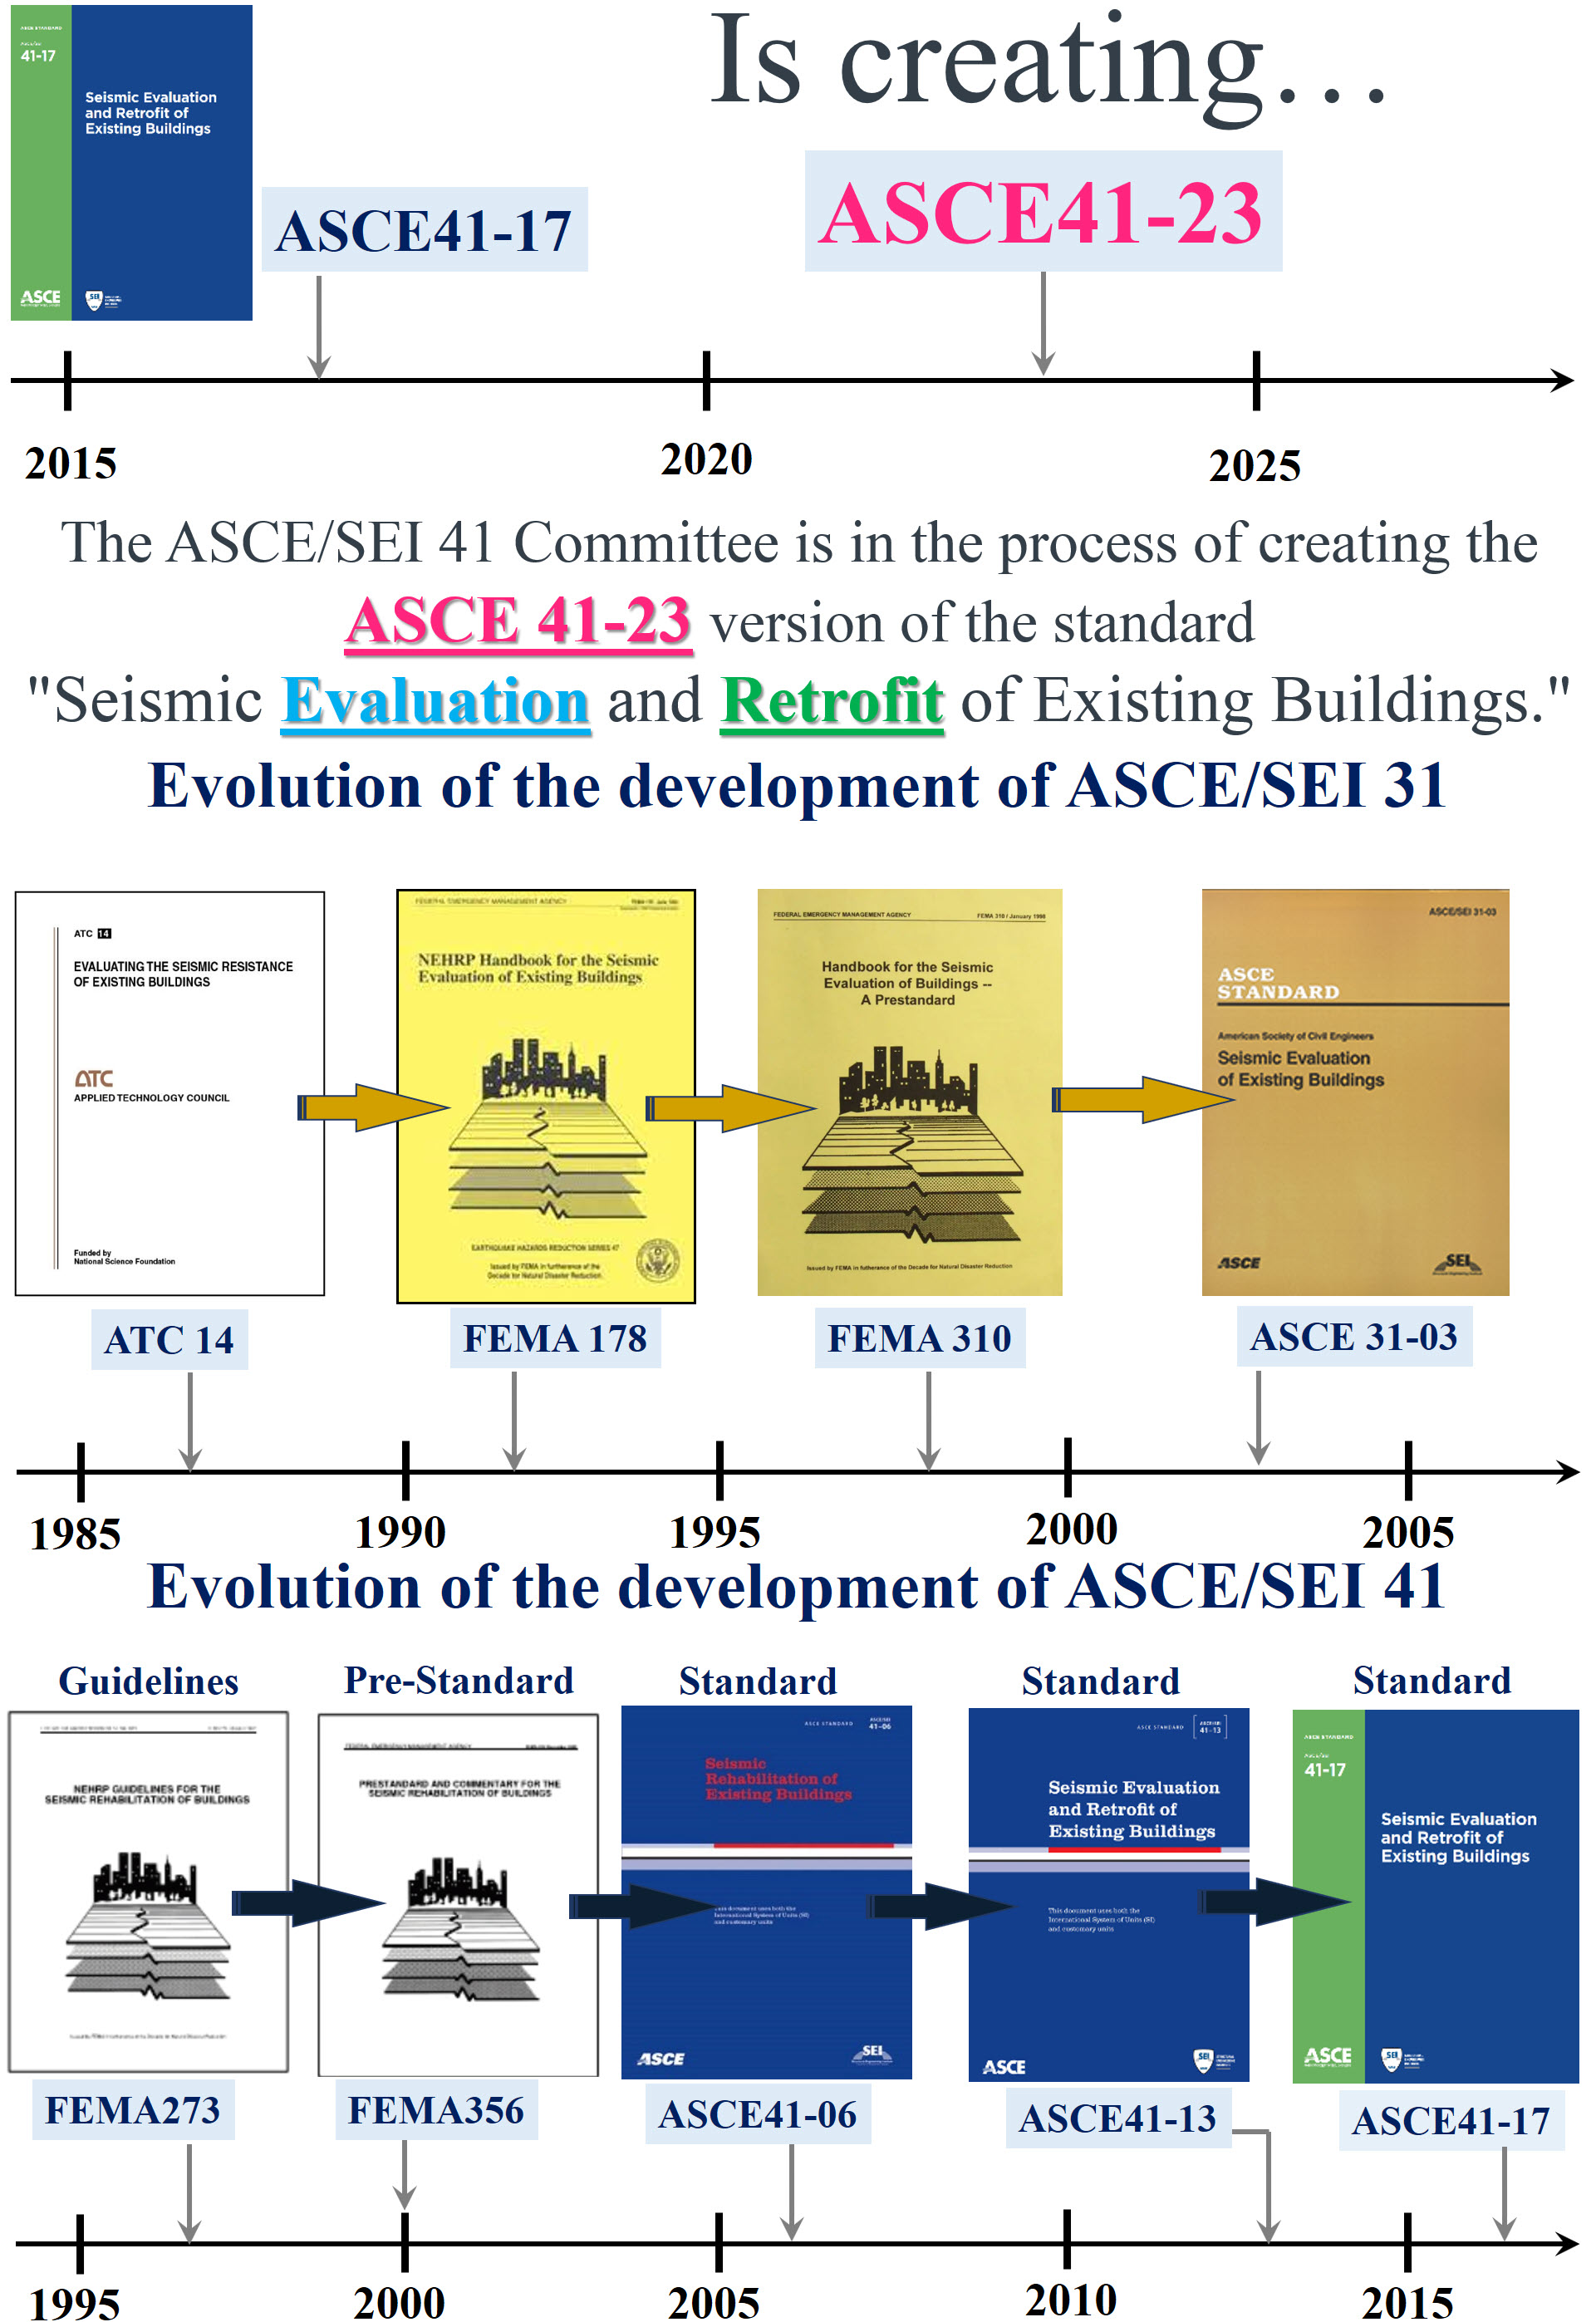 (ASCE 41-23 is creating ... (Performance - Based Seismic Design